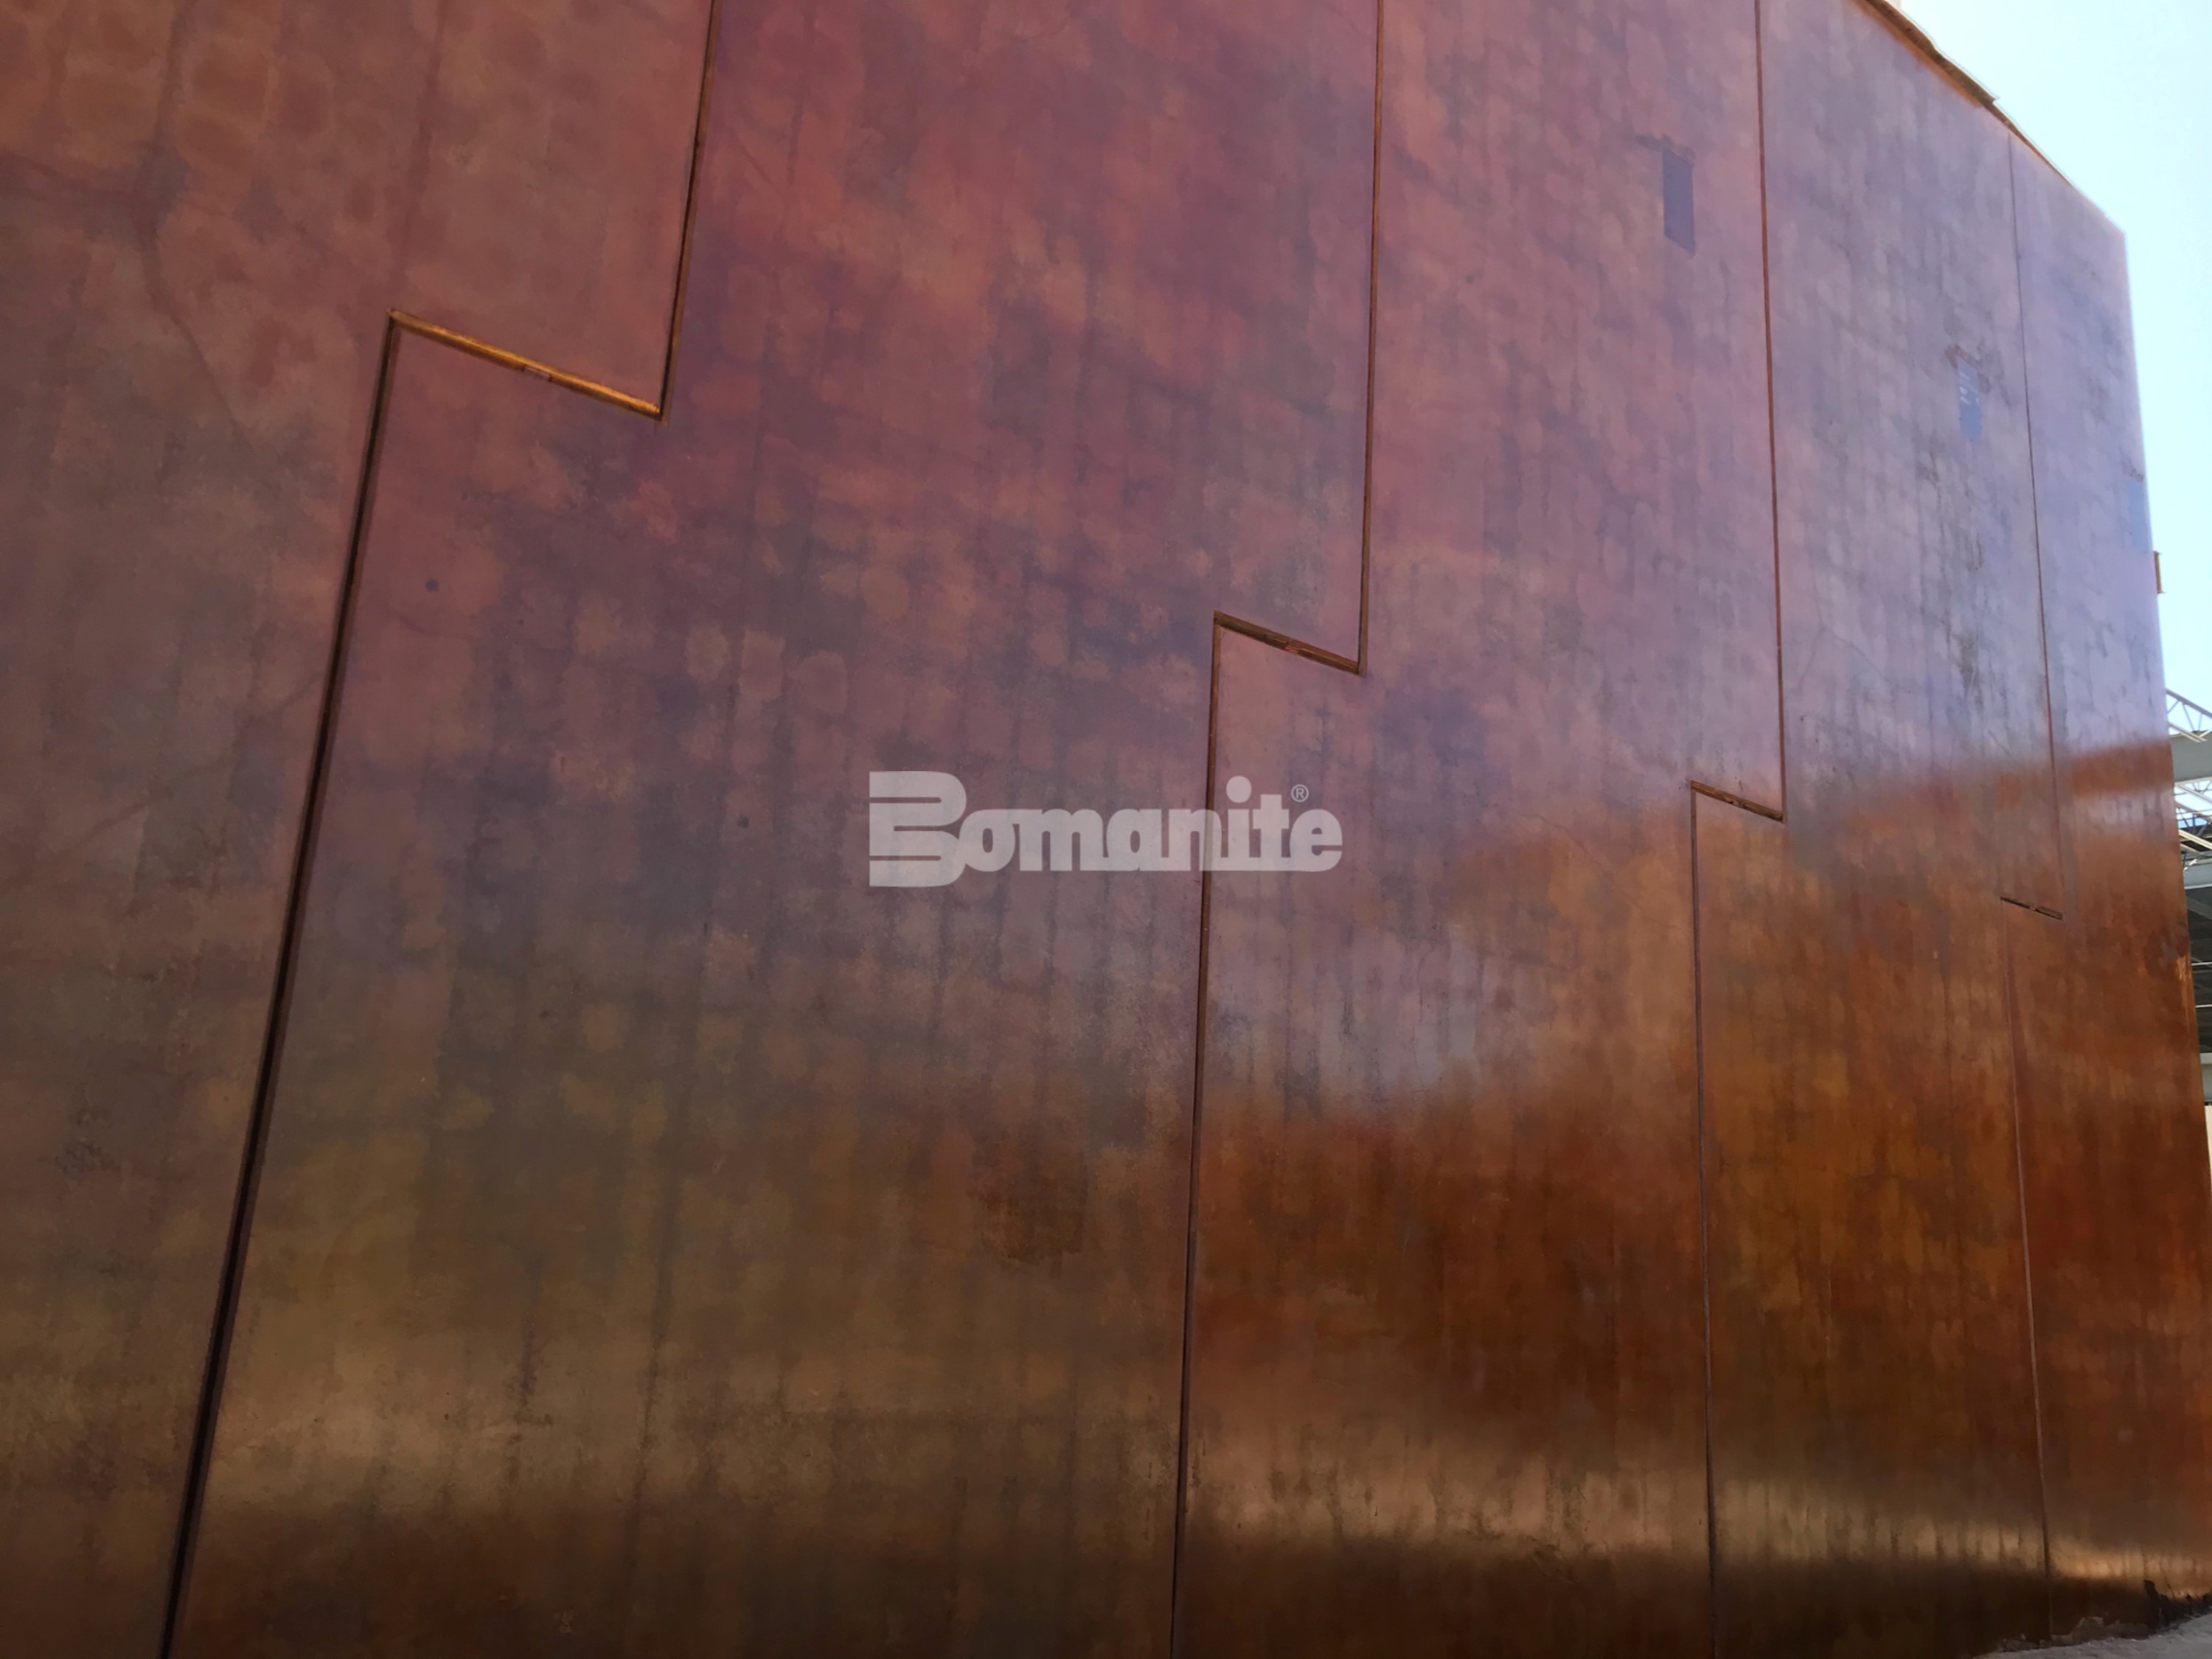 Bomanite Artistic Concrete colored the Bomanite chemically stained concrete wall panels installed by Sundt Construction for the Eastside Regional Park Rec Center known as the Beast Urban Park by the community of El Paso.